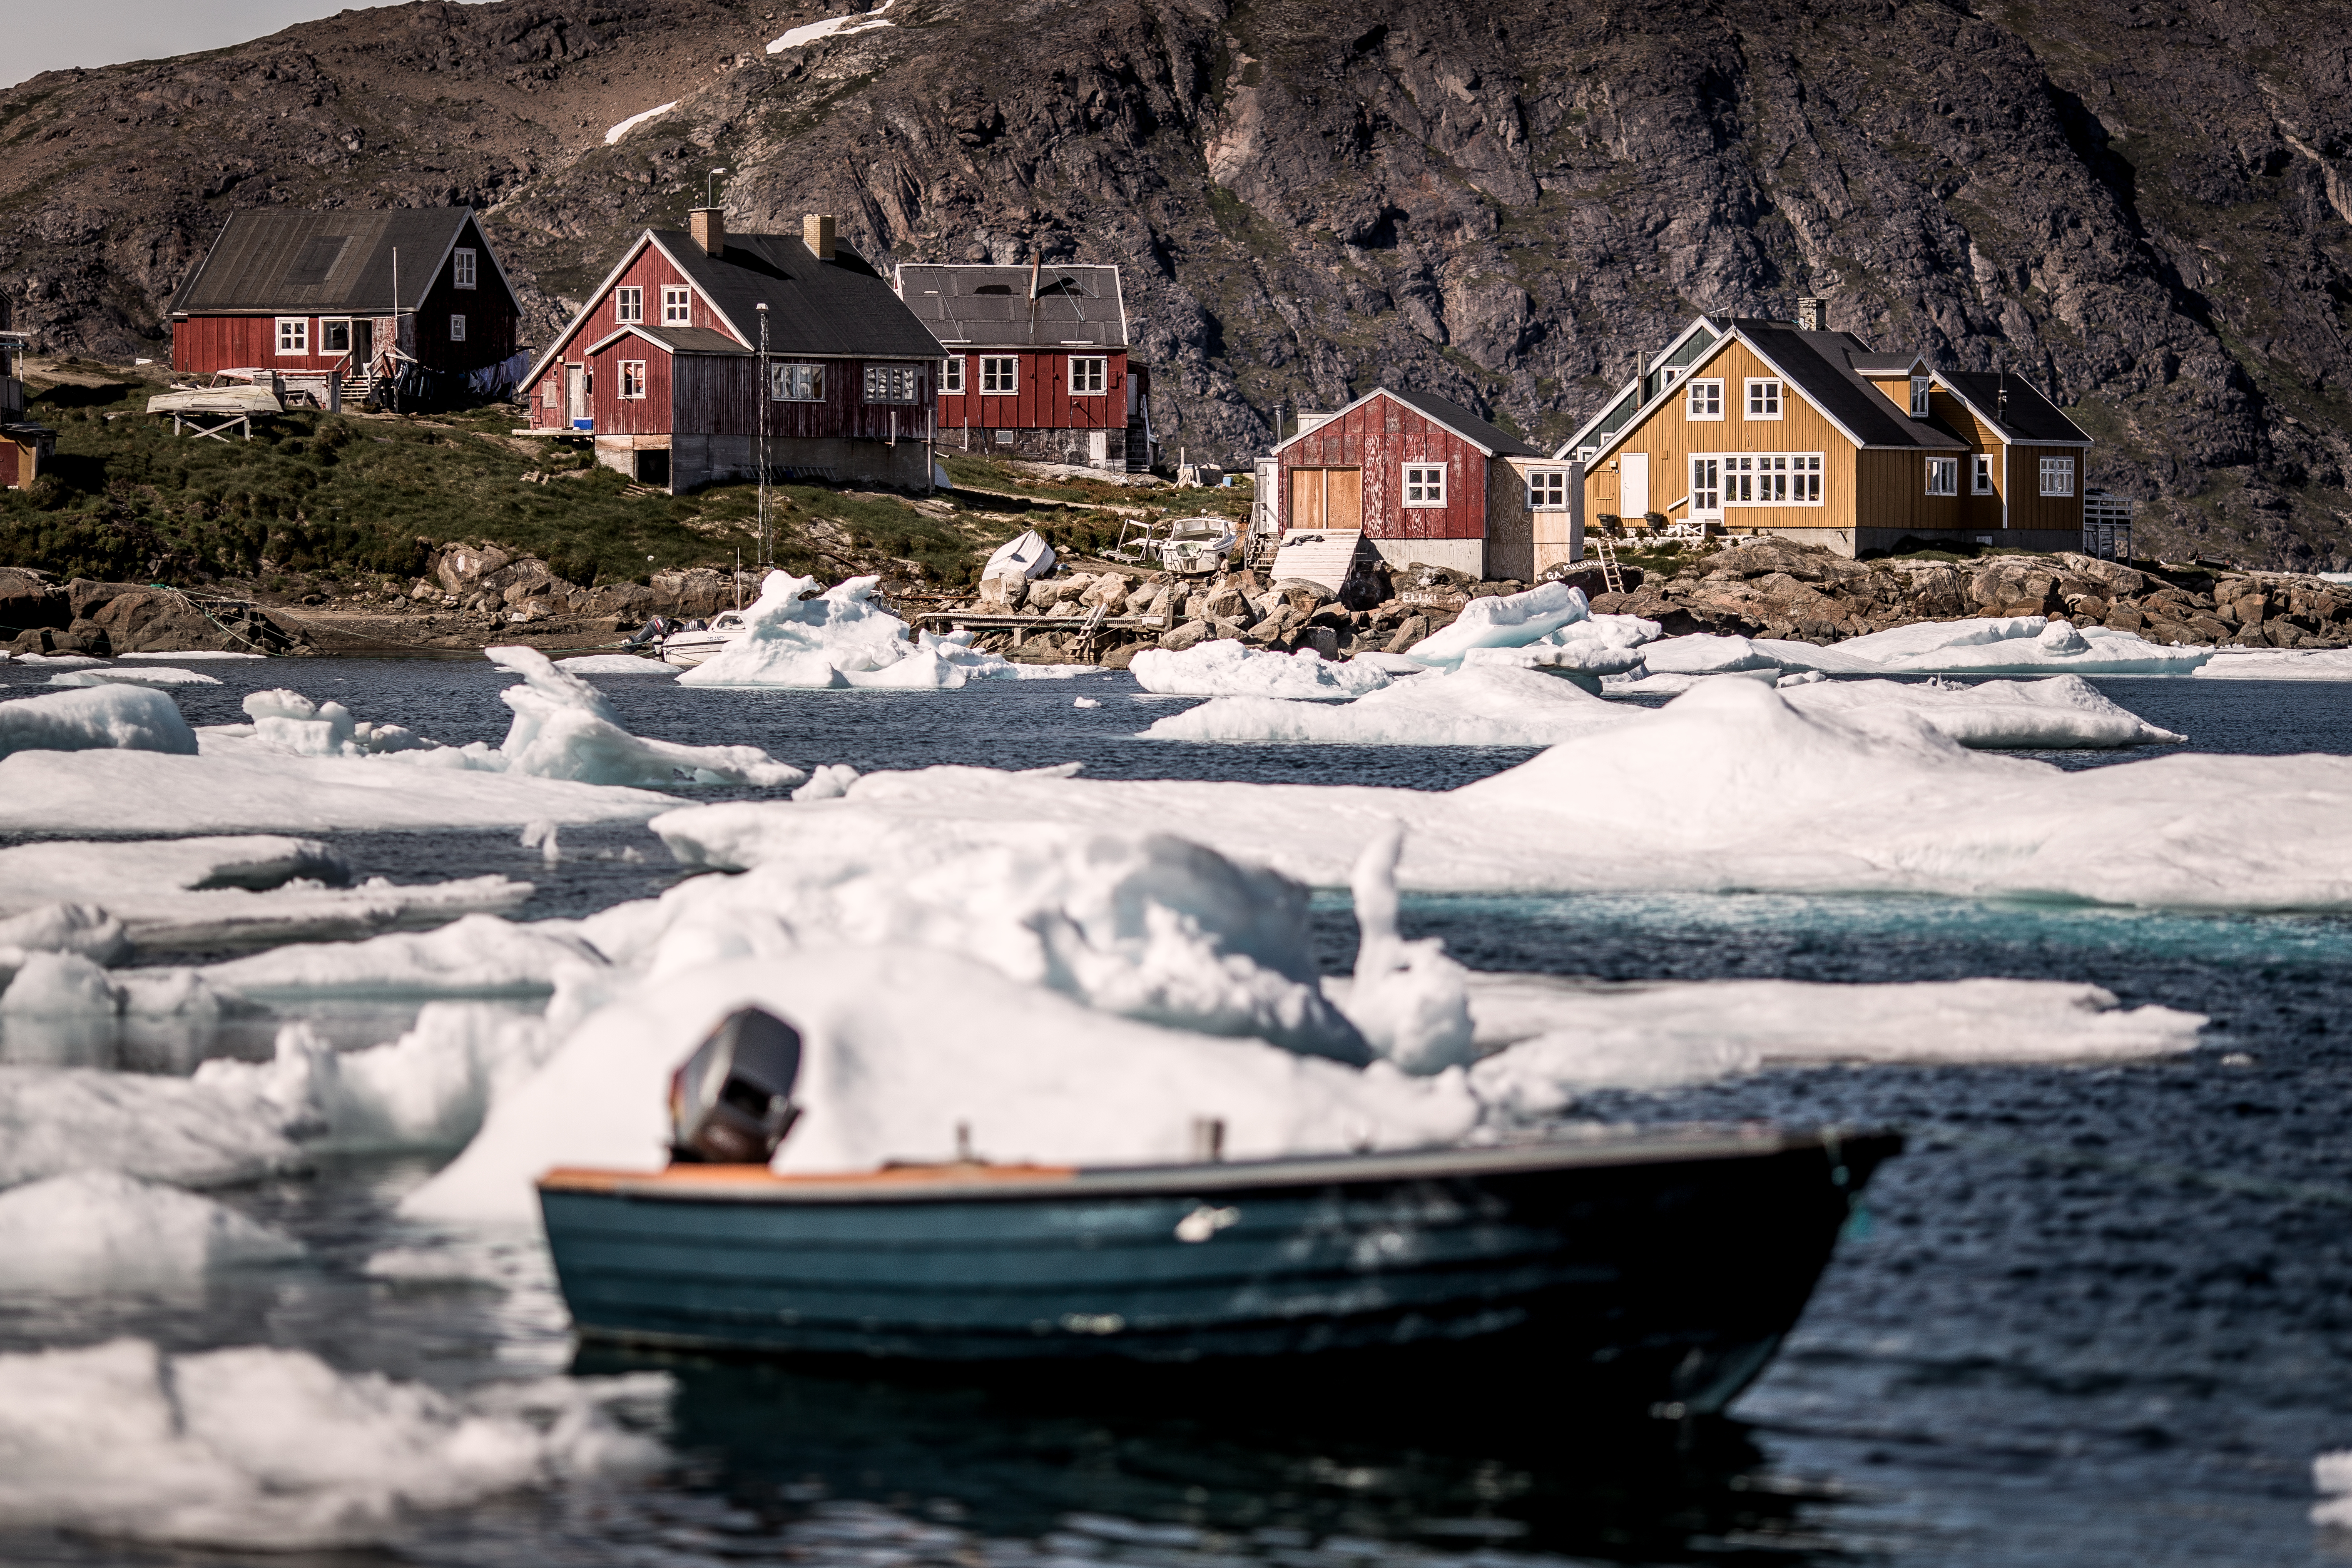 Crediting is required when using photos from our galleries. This means you have to credit both the photographer and Visit Greenland.  Photo by Mads Pihl - Visit Greenland  This photo is licensed under Visit Greenland A/S' Limited Commercial license.  Please refer to the license agreement for more info about the rights of use associated with the image.  Download the agreement here:  http://vg.gl/license  When downloading or sharing this image you enter into an agreement with Visit Greenland A/S about the use of the image under this license.  If you want to apply for extended user rights for downloads on this database please read this article and follow the guidelines: http://goo.gl/RsJtBR